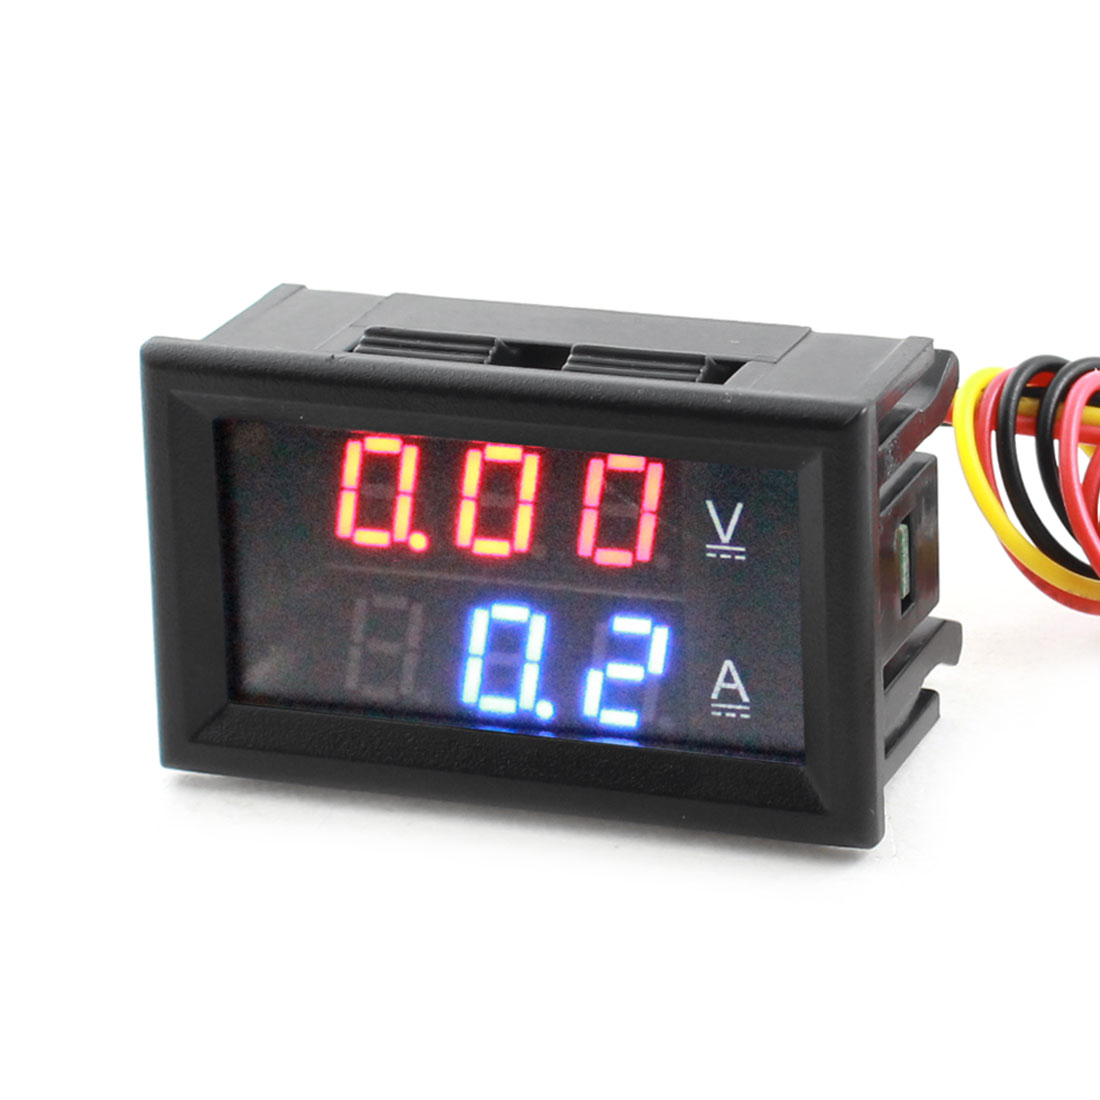 DC 0-100V 50A 7 Segment Red Blue Digits 3-Bit LED Digital Display Panel Gauge Ammeter Voltmeter Volt Ampere Meter w Cable